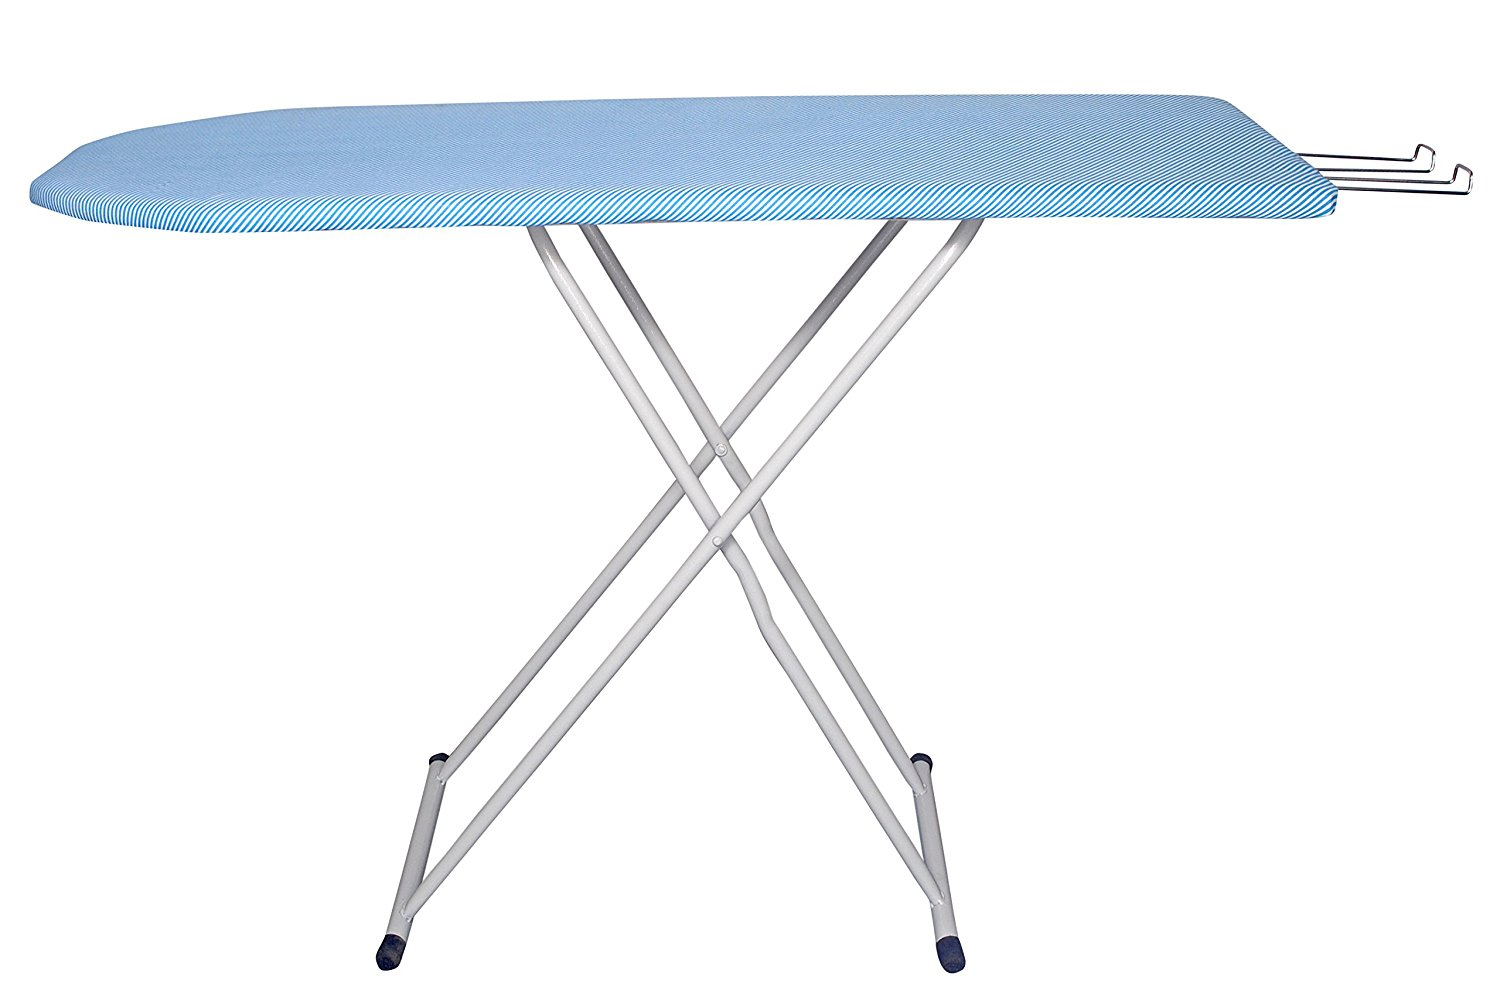 Arrision Ironing Board